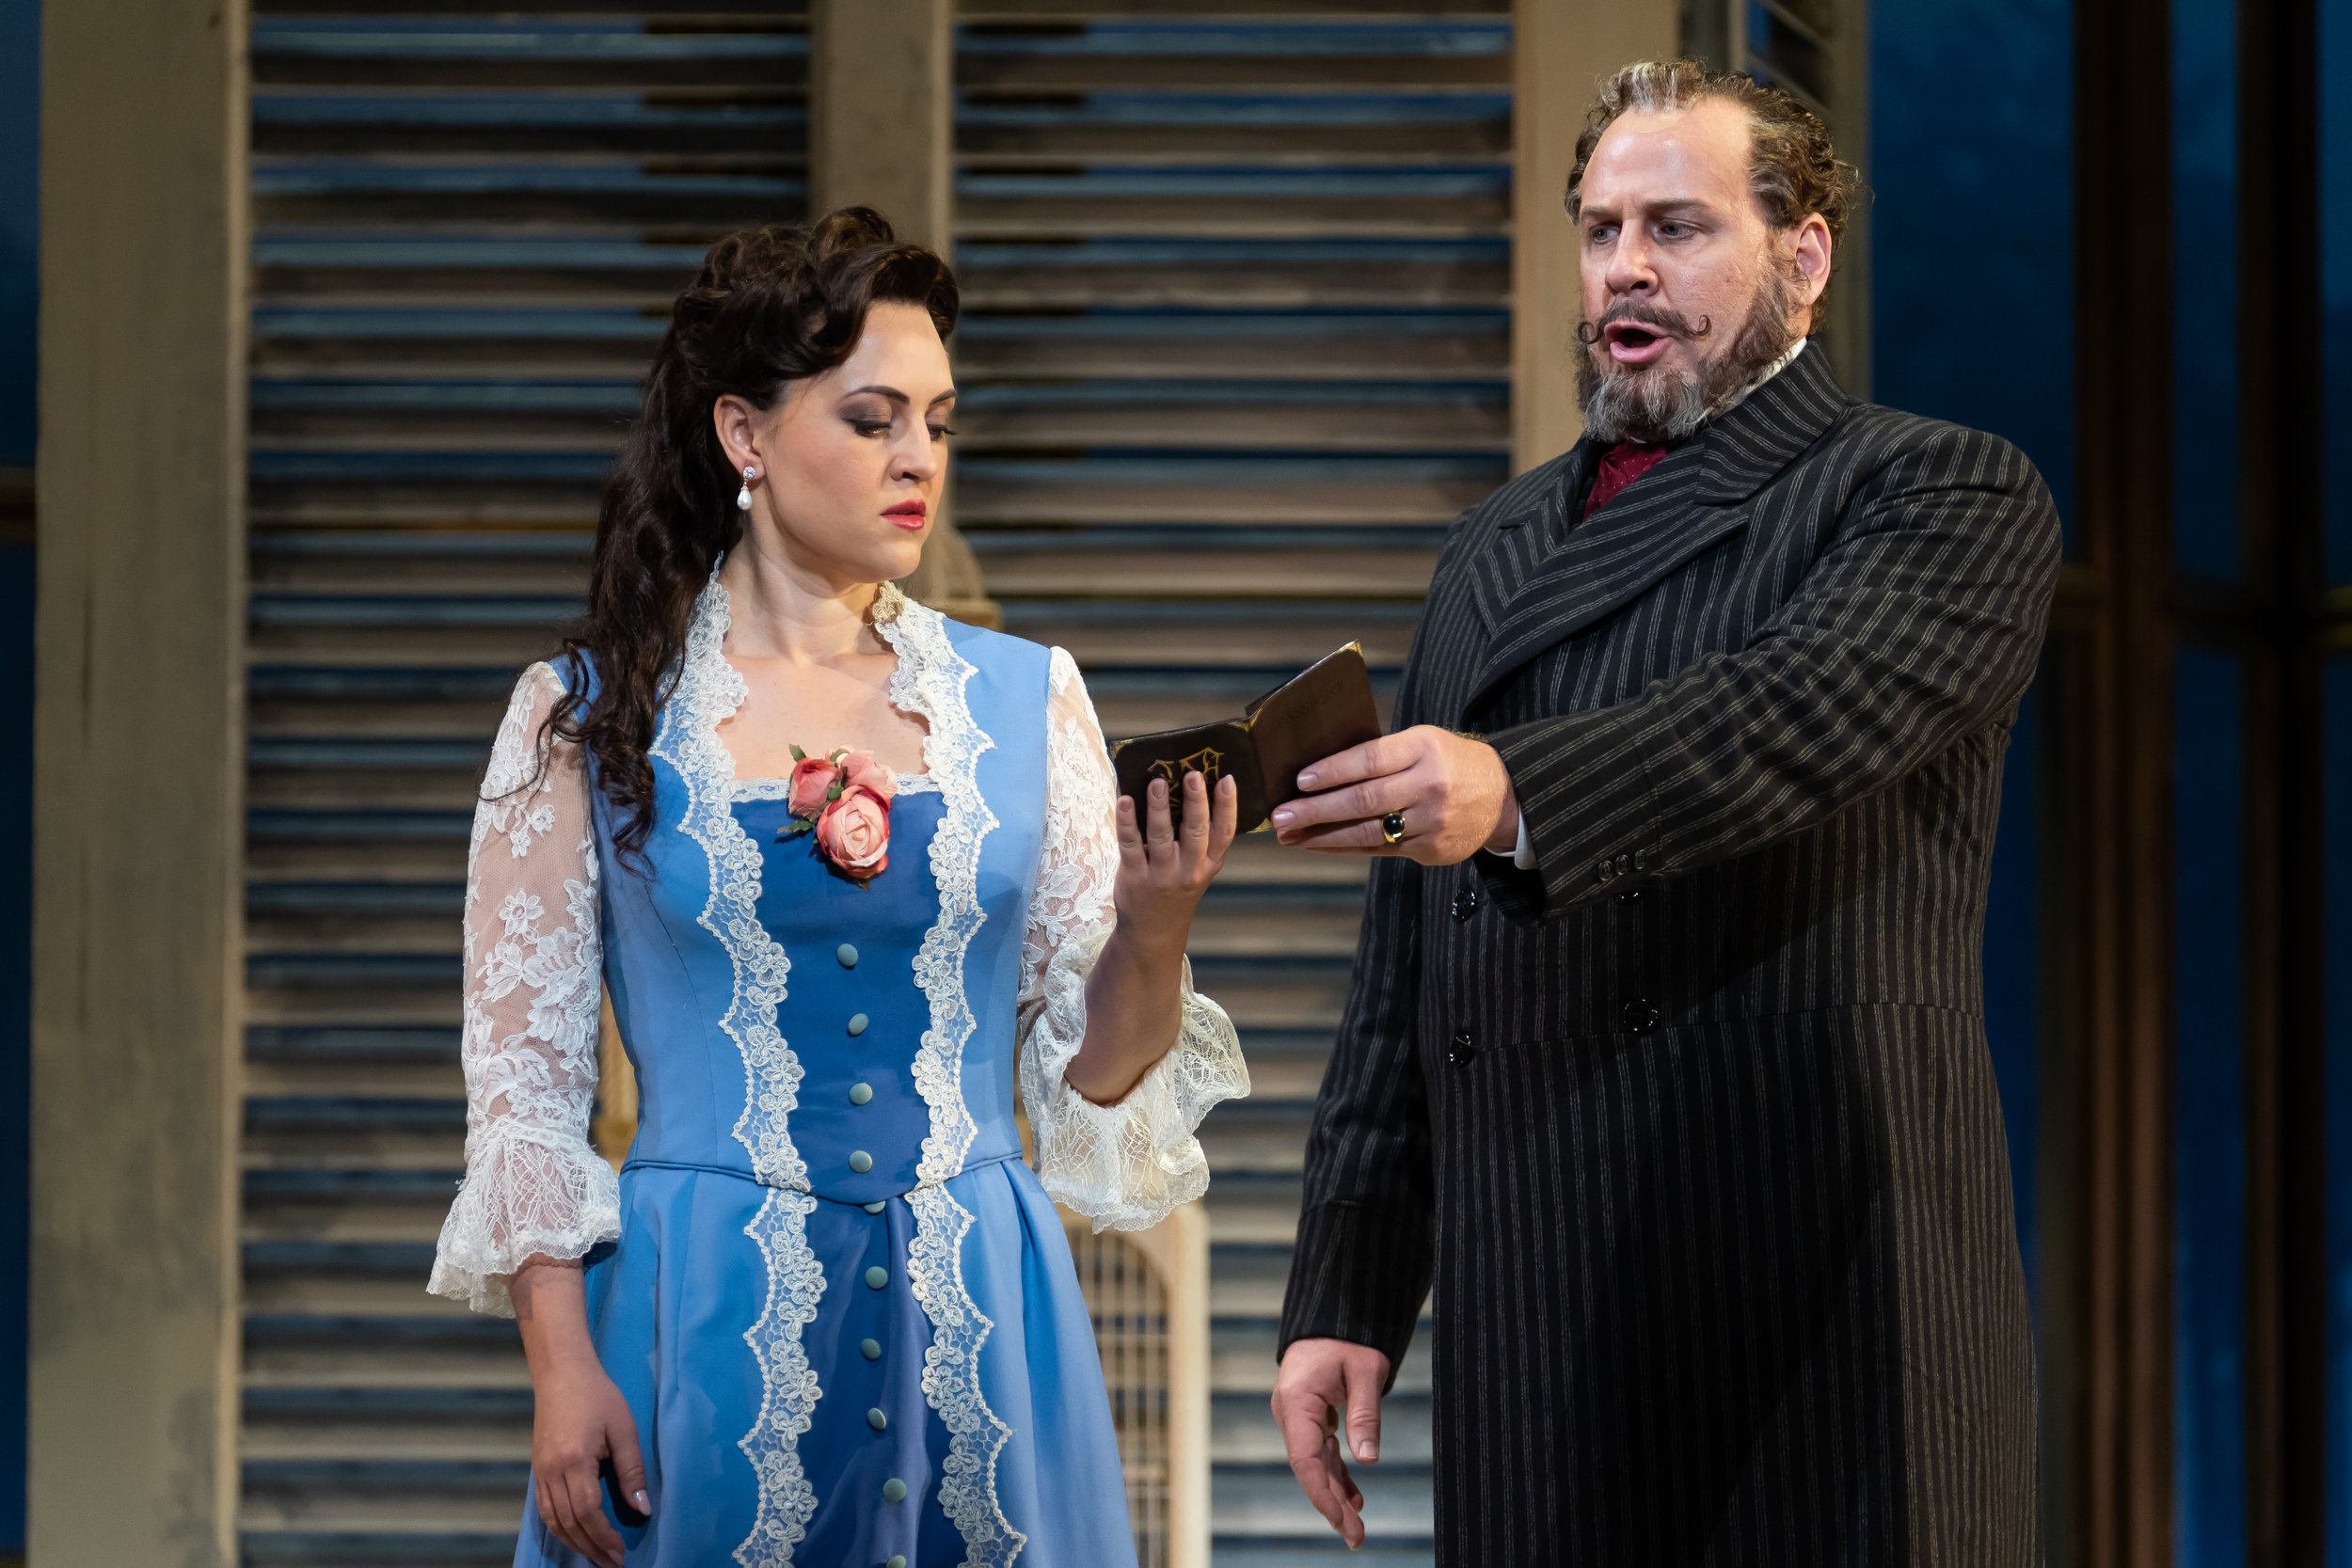 Giorgio Germont (baritone Lucas Meachem) gives Violetta (soprano Venera Gimadieva) an ultimatum in WNO's La traviata 2018 production_credit Scott Suchman.JPG